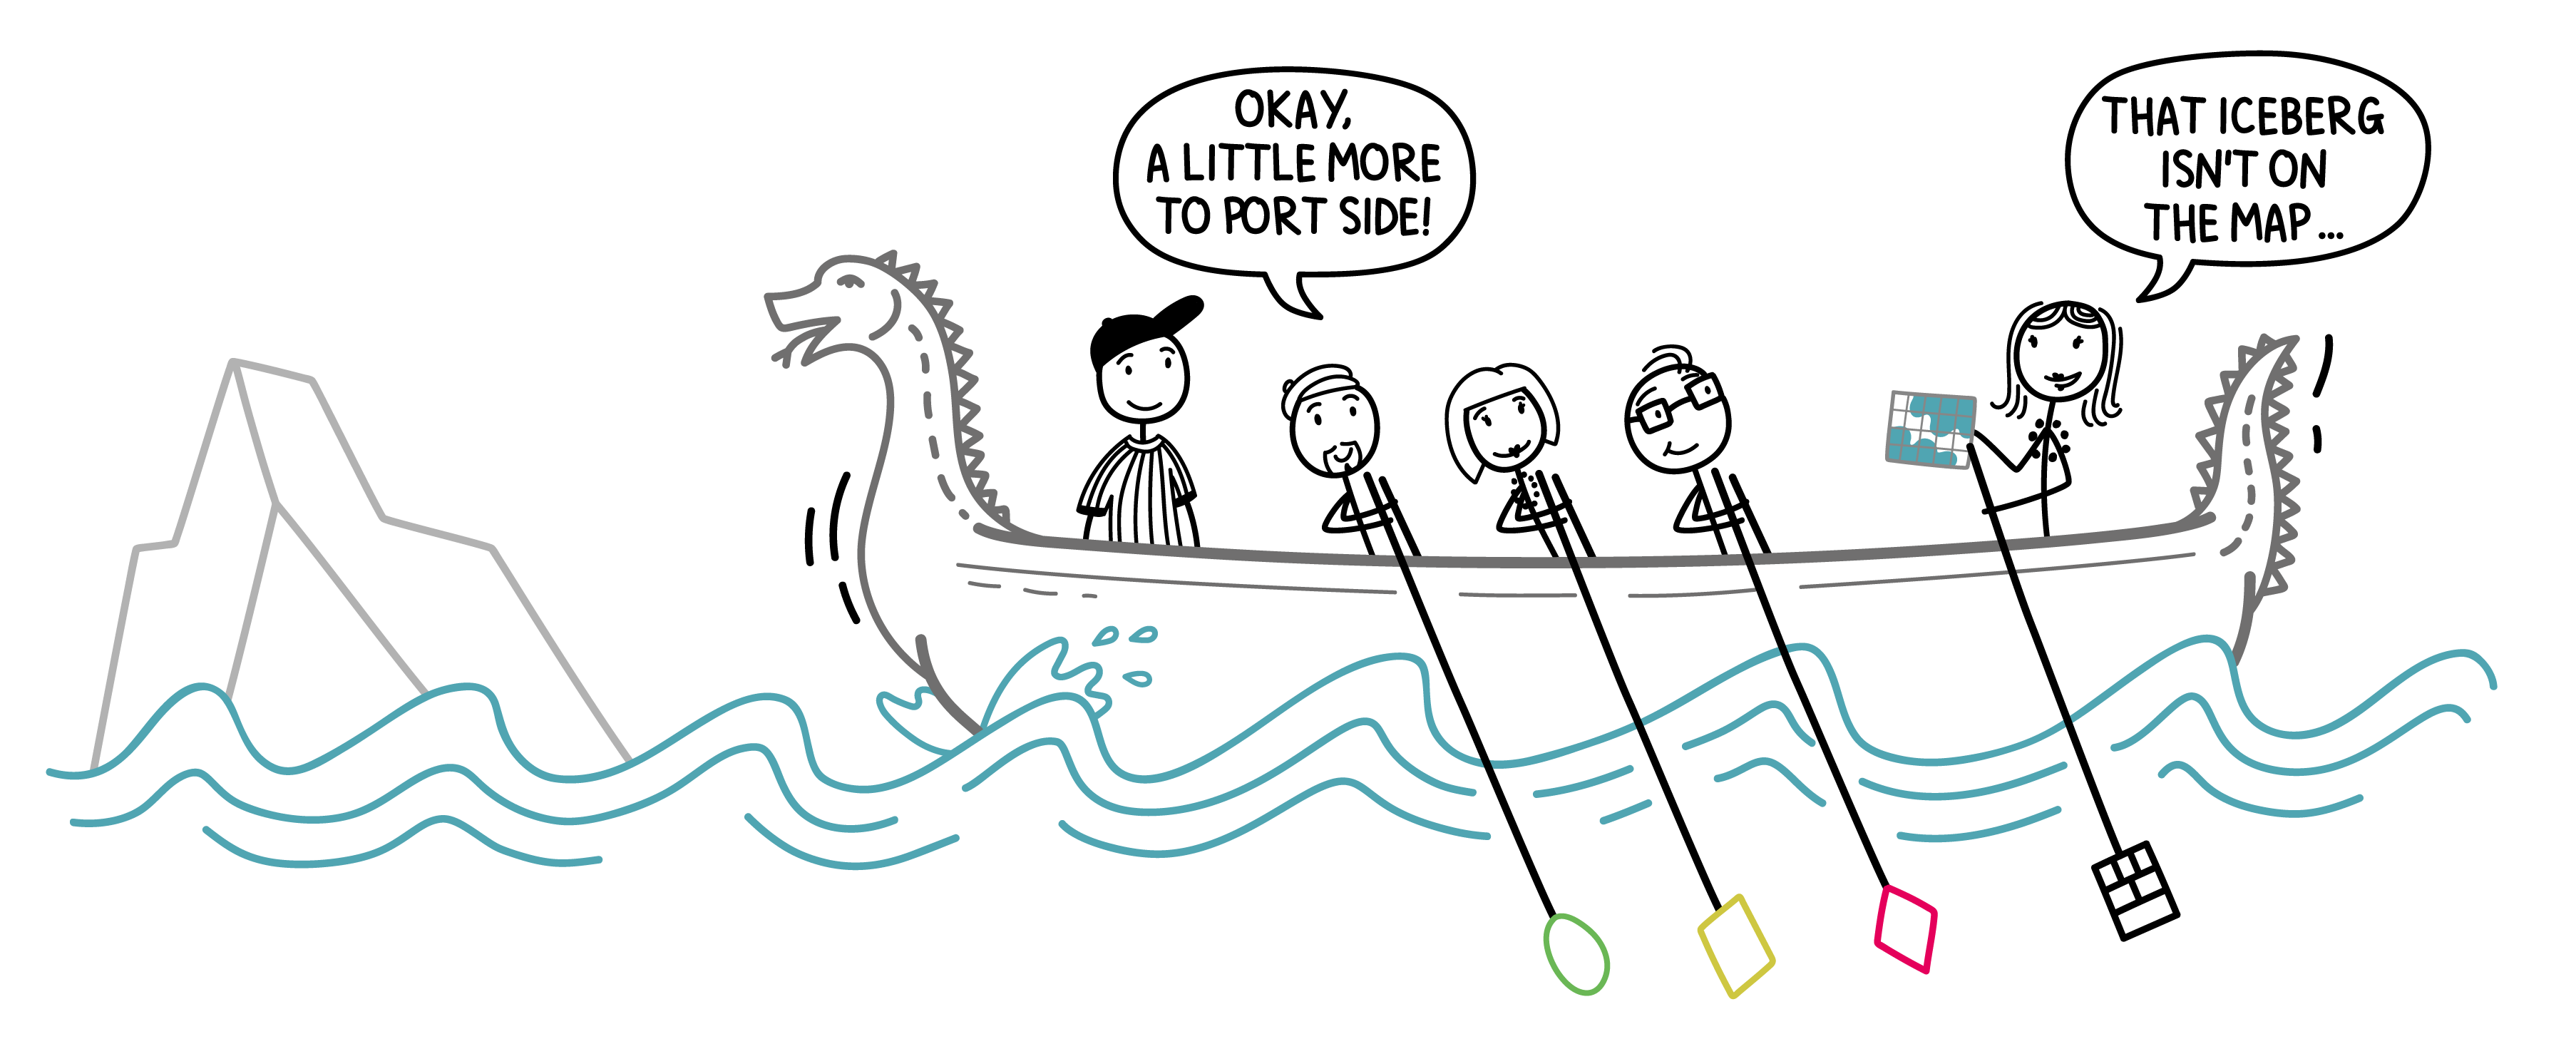 Scrum Teams are like sailors traveling uncharted seas. Unexpected things might happen...